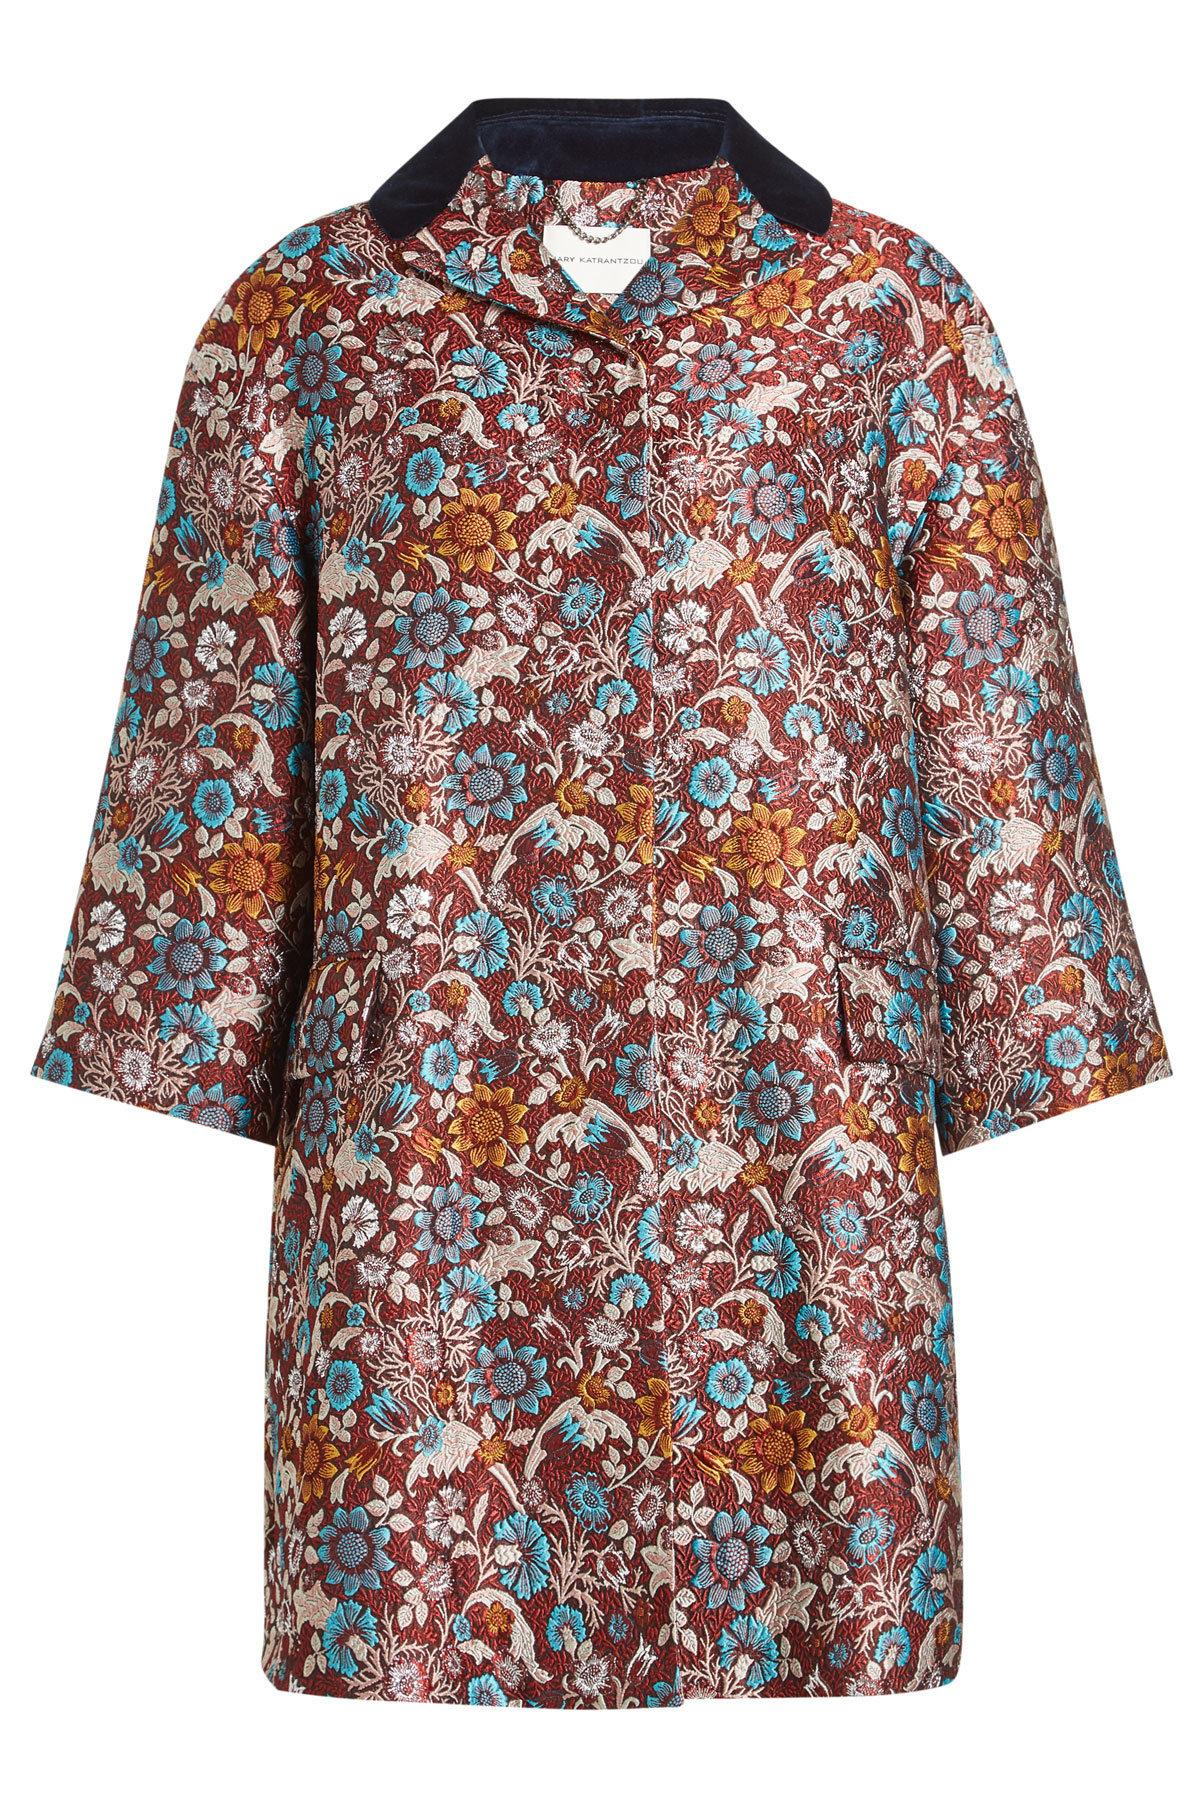 Mary Katrantzou Embroidered Coat With Silk In Multicolored